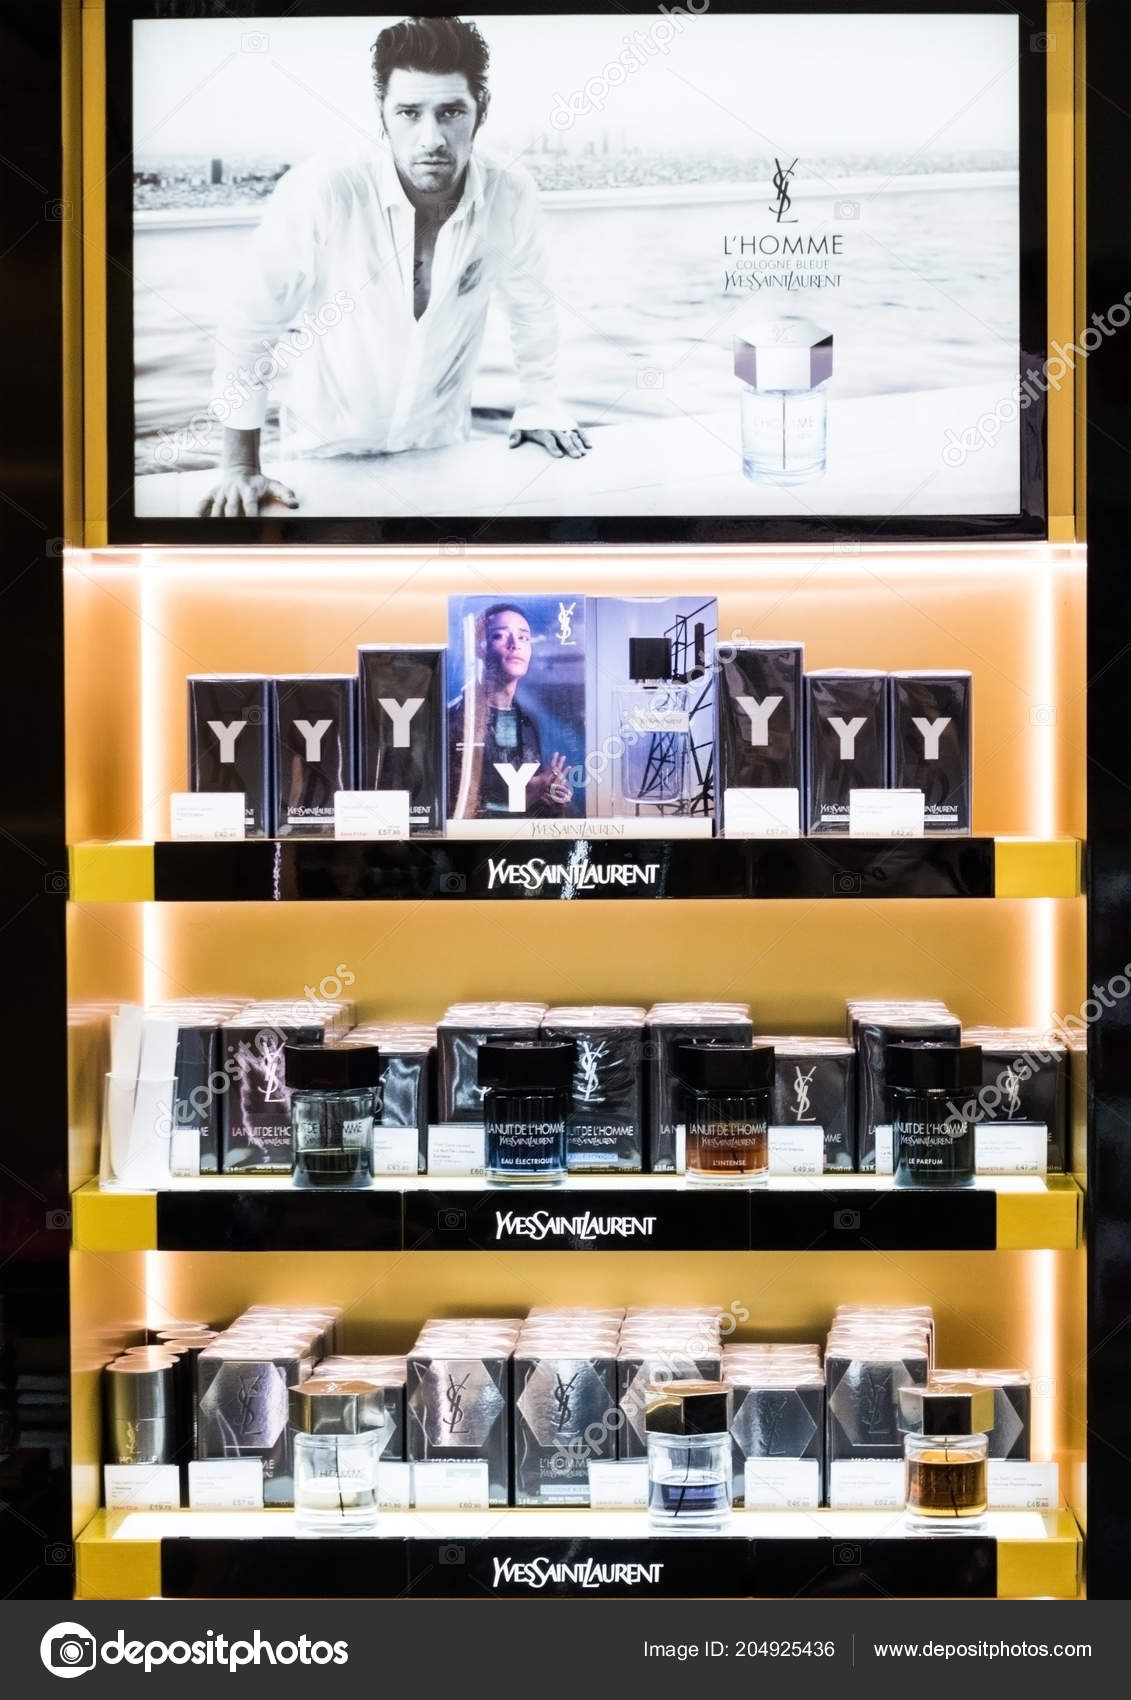 e060480be5a Amsterdam Netherlands July 2018 Yves Saint Laurent Frangrance Perfume Stand  — Stock Photo